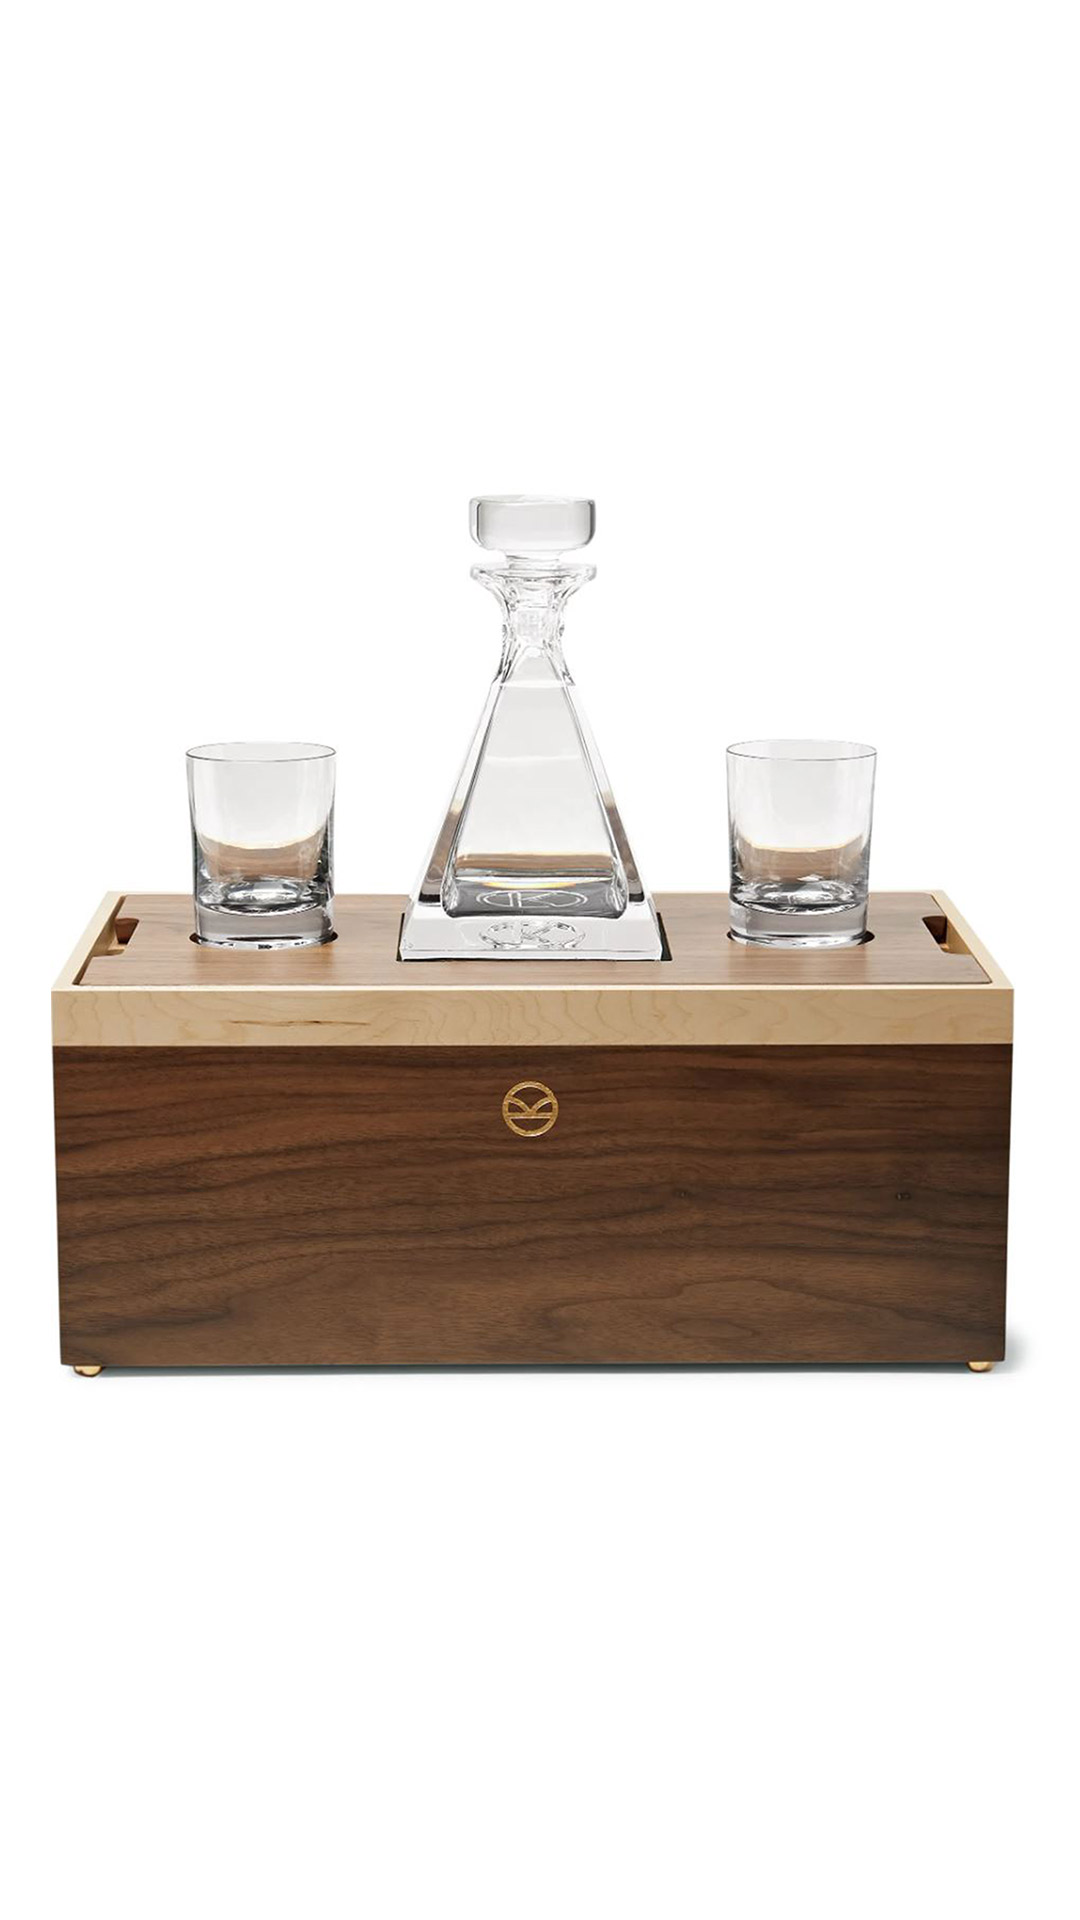 KINGSMAN + Higgs & Crick Decanter and Glass Set